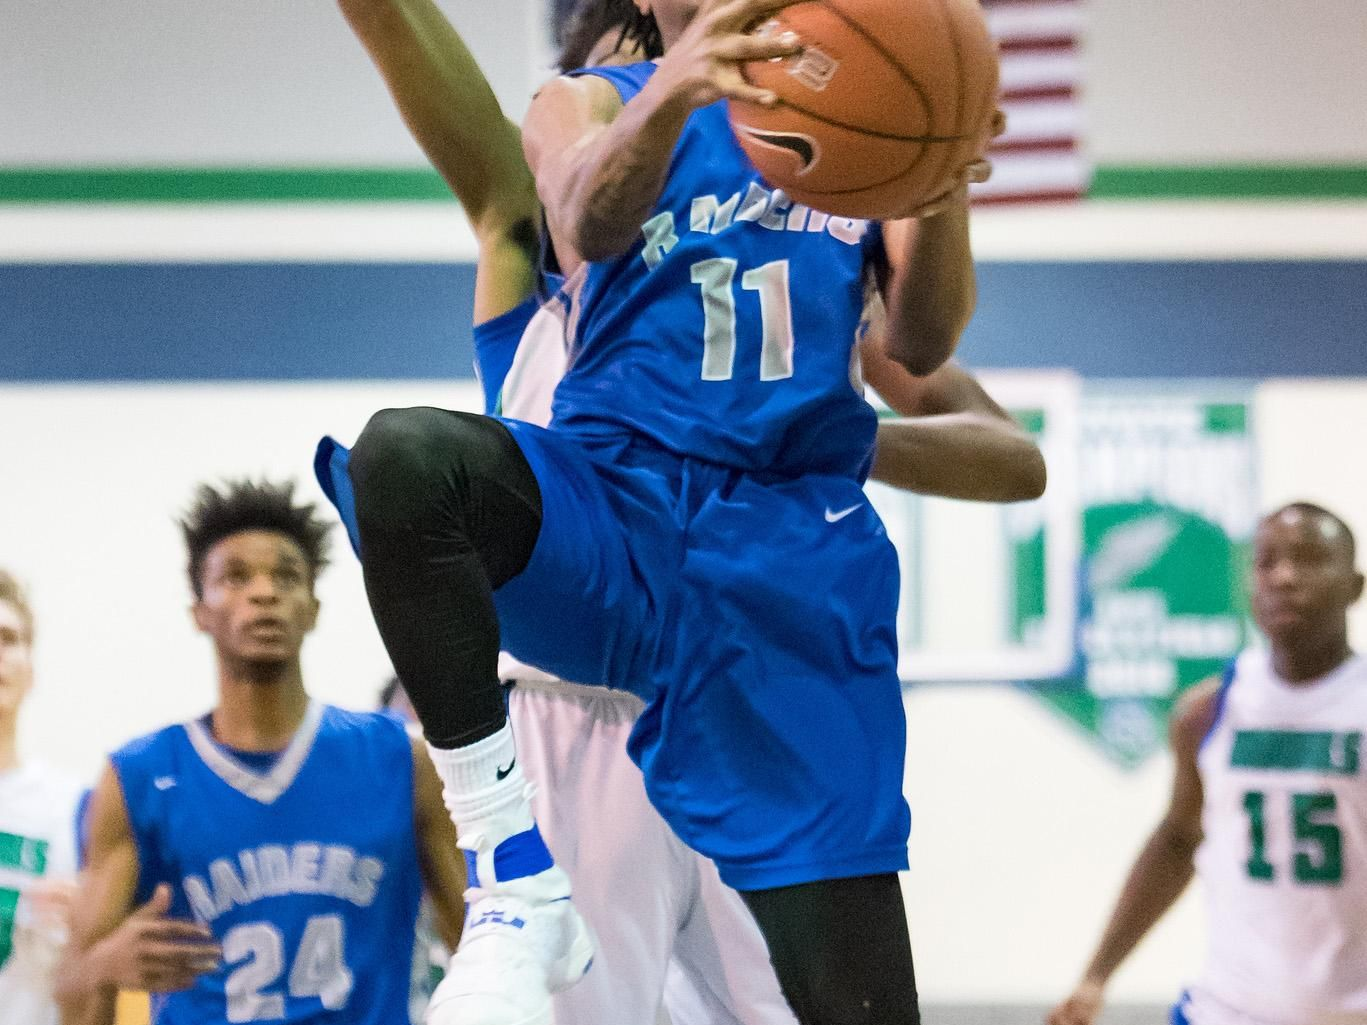 Brandon Palmer of Woodbridge takes the ball to the net in boys basketball at St. Georges Technical High School in Middletown on Saturday afternoon.